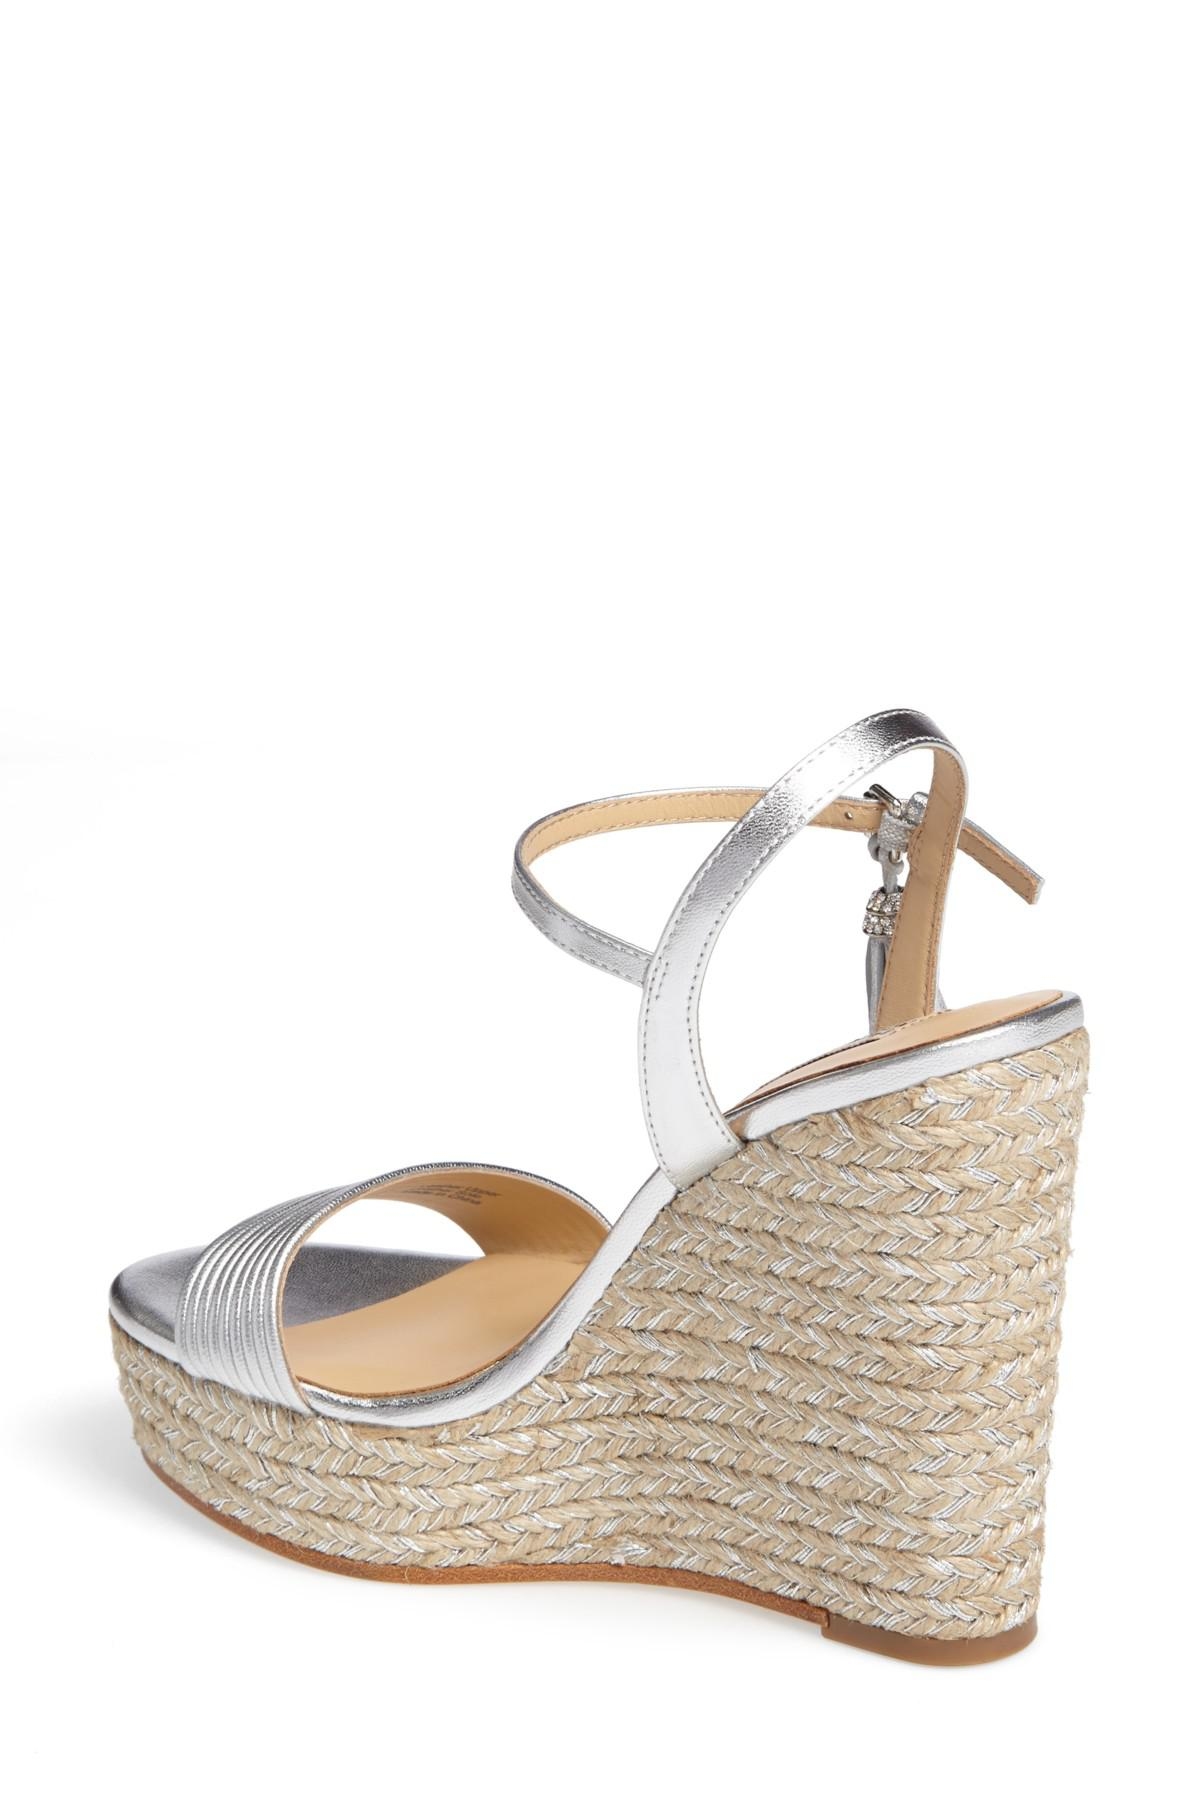 Badgley Mischka Trace Strappy Platform Wedge Sandal OCSO3d